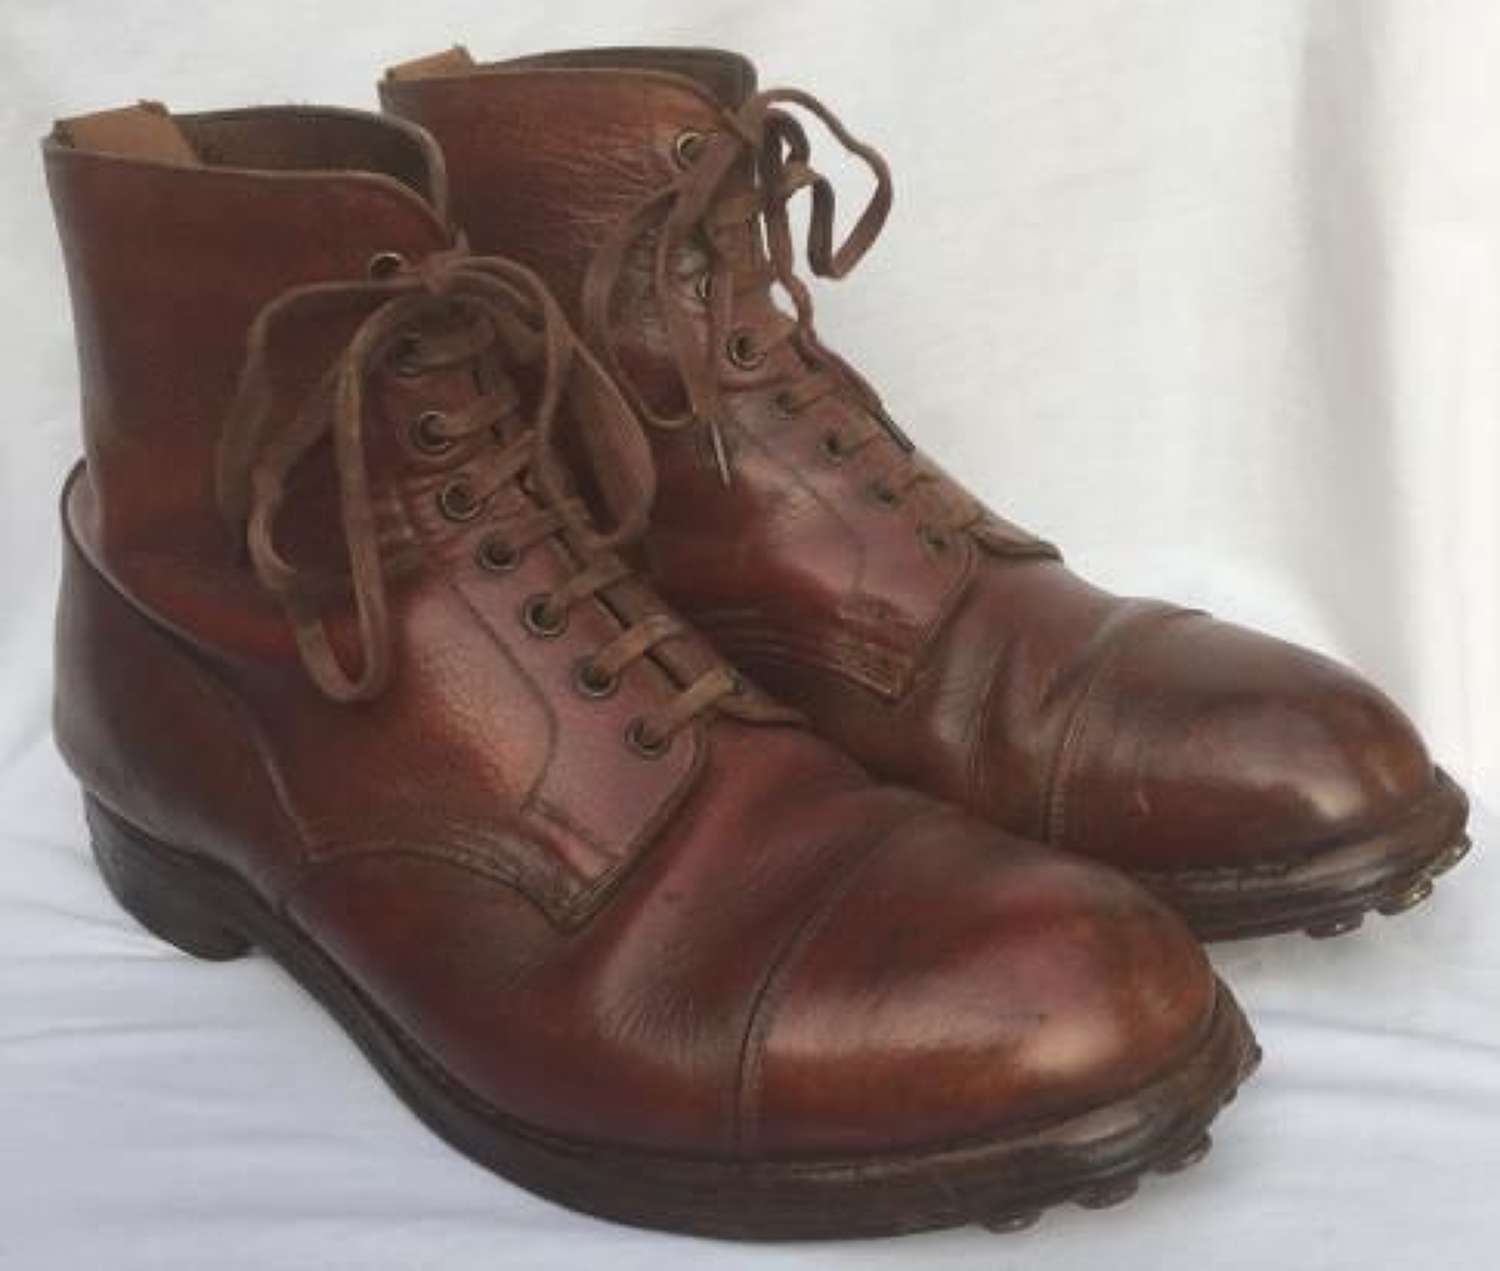 1944 Dated British Army Officers Boots Size 7